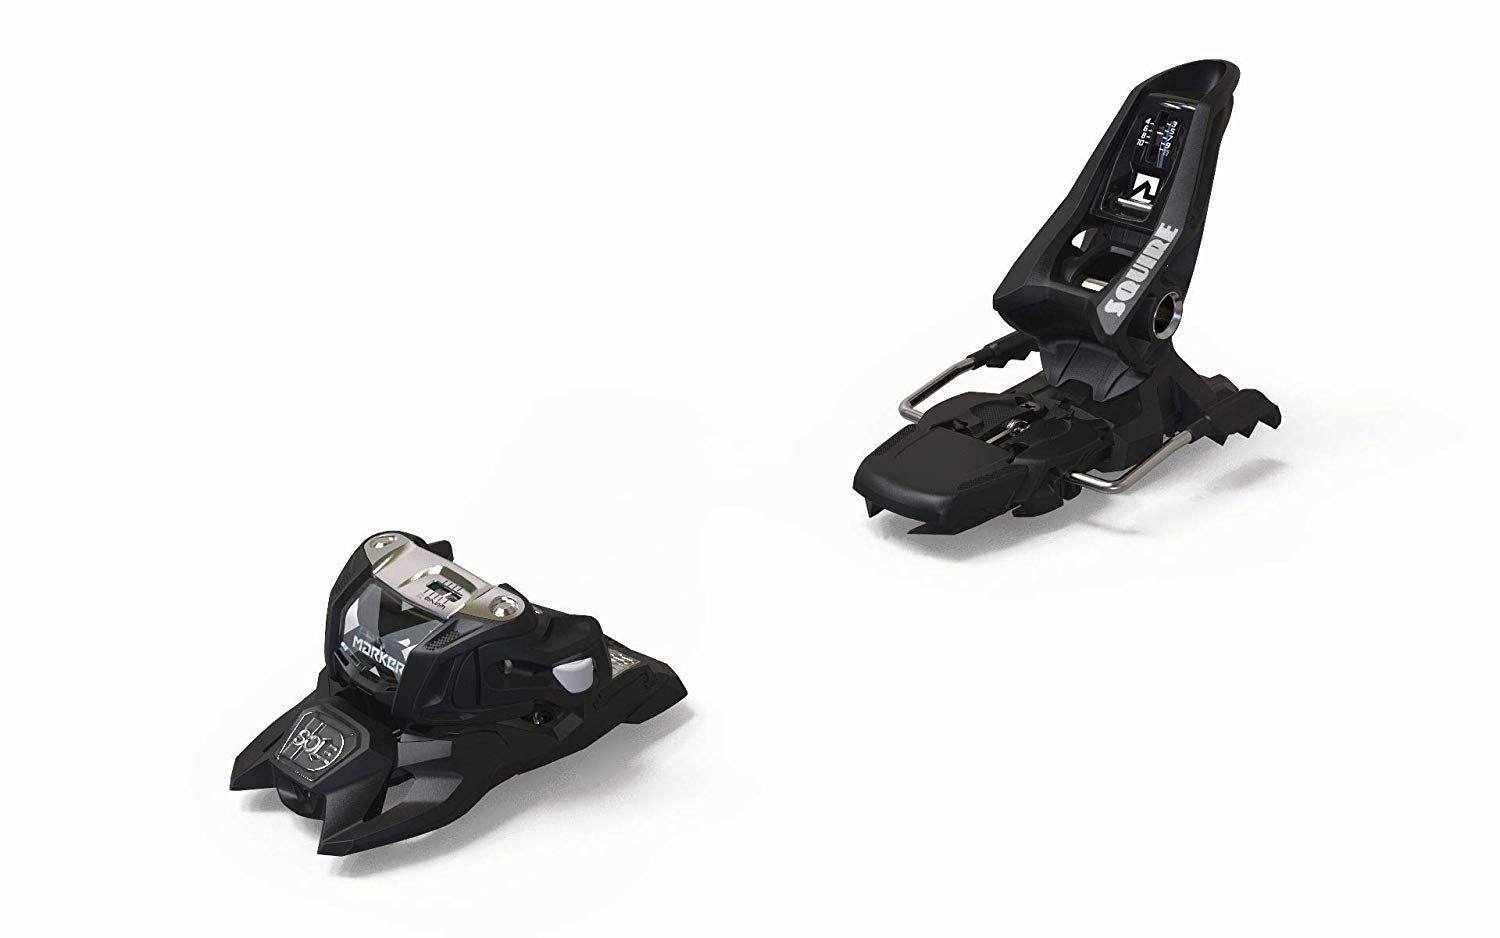 Top 10 Best Ski Bindings Reviews For All Mountains 2021 8